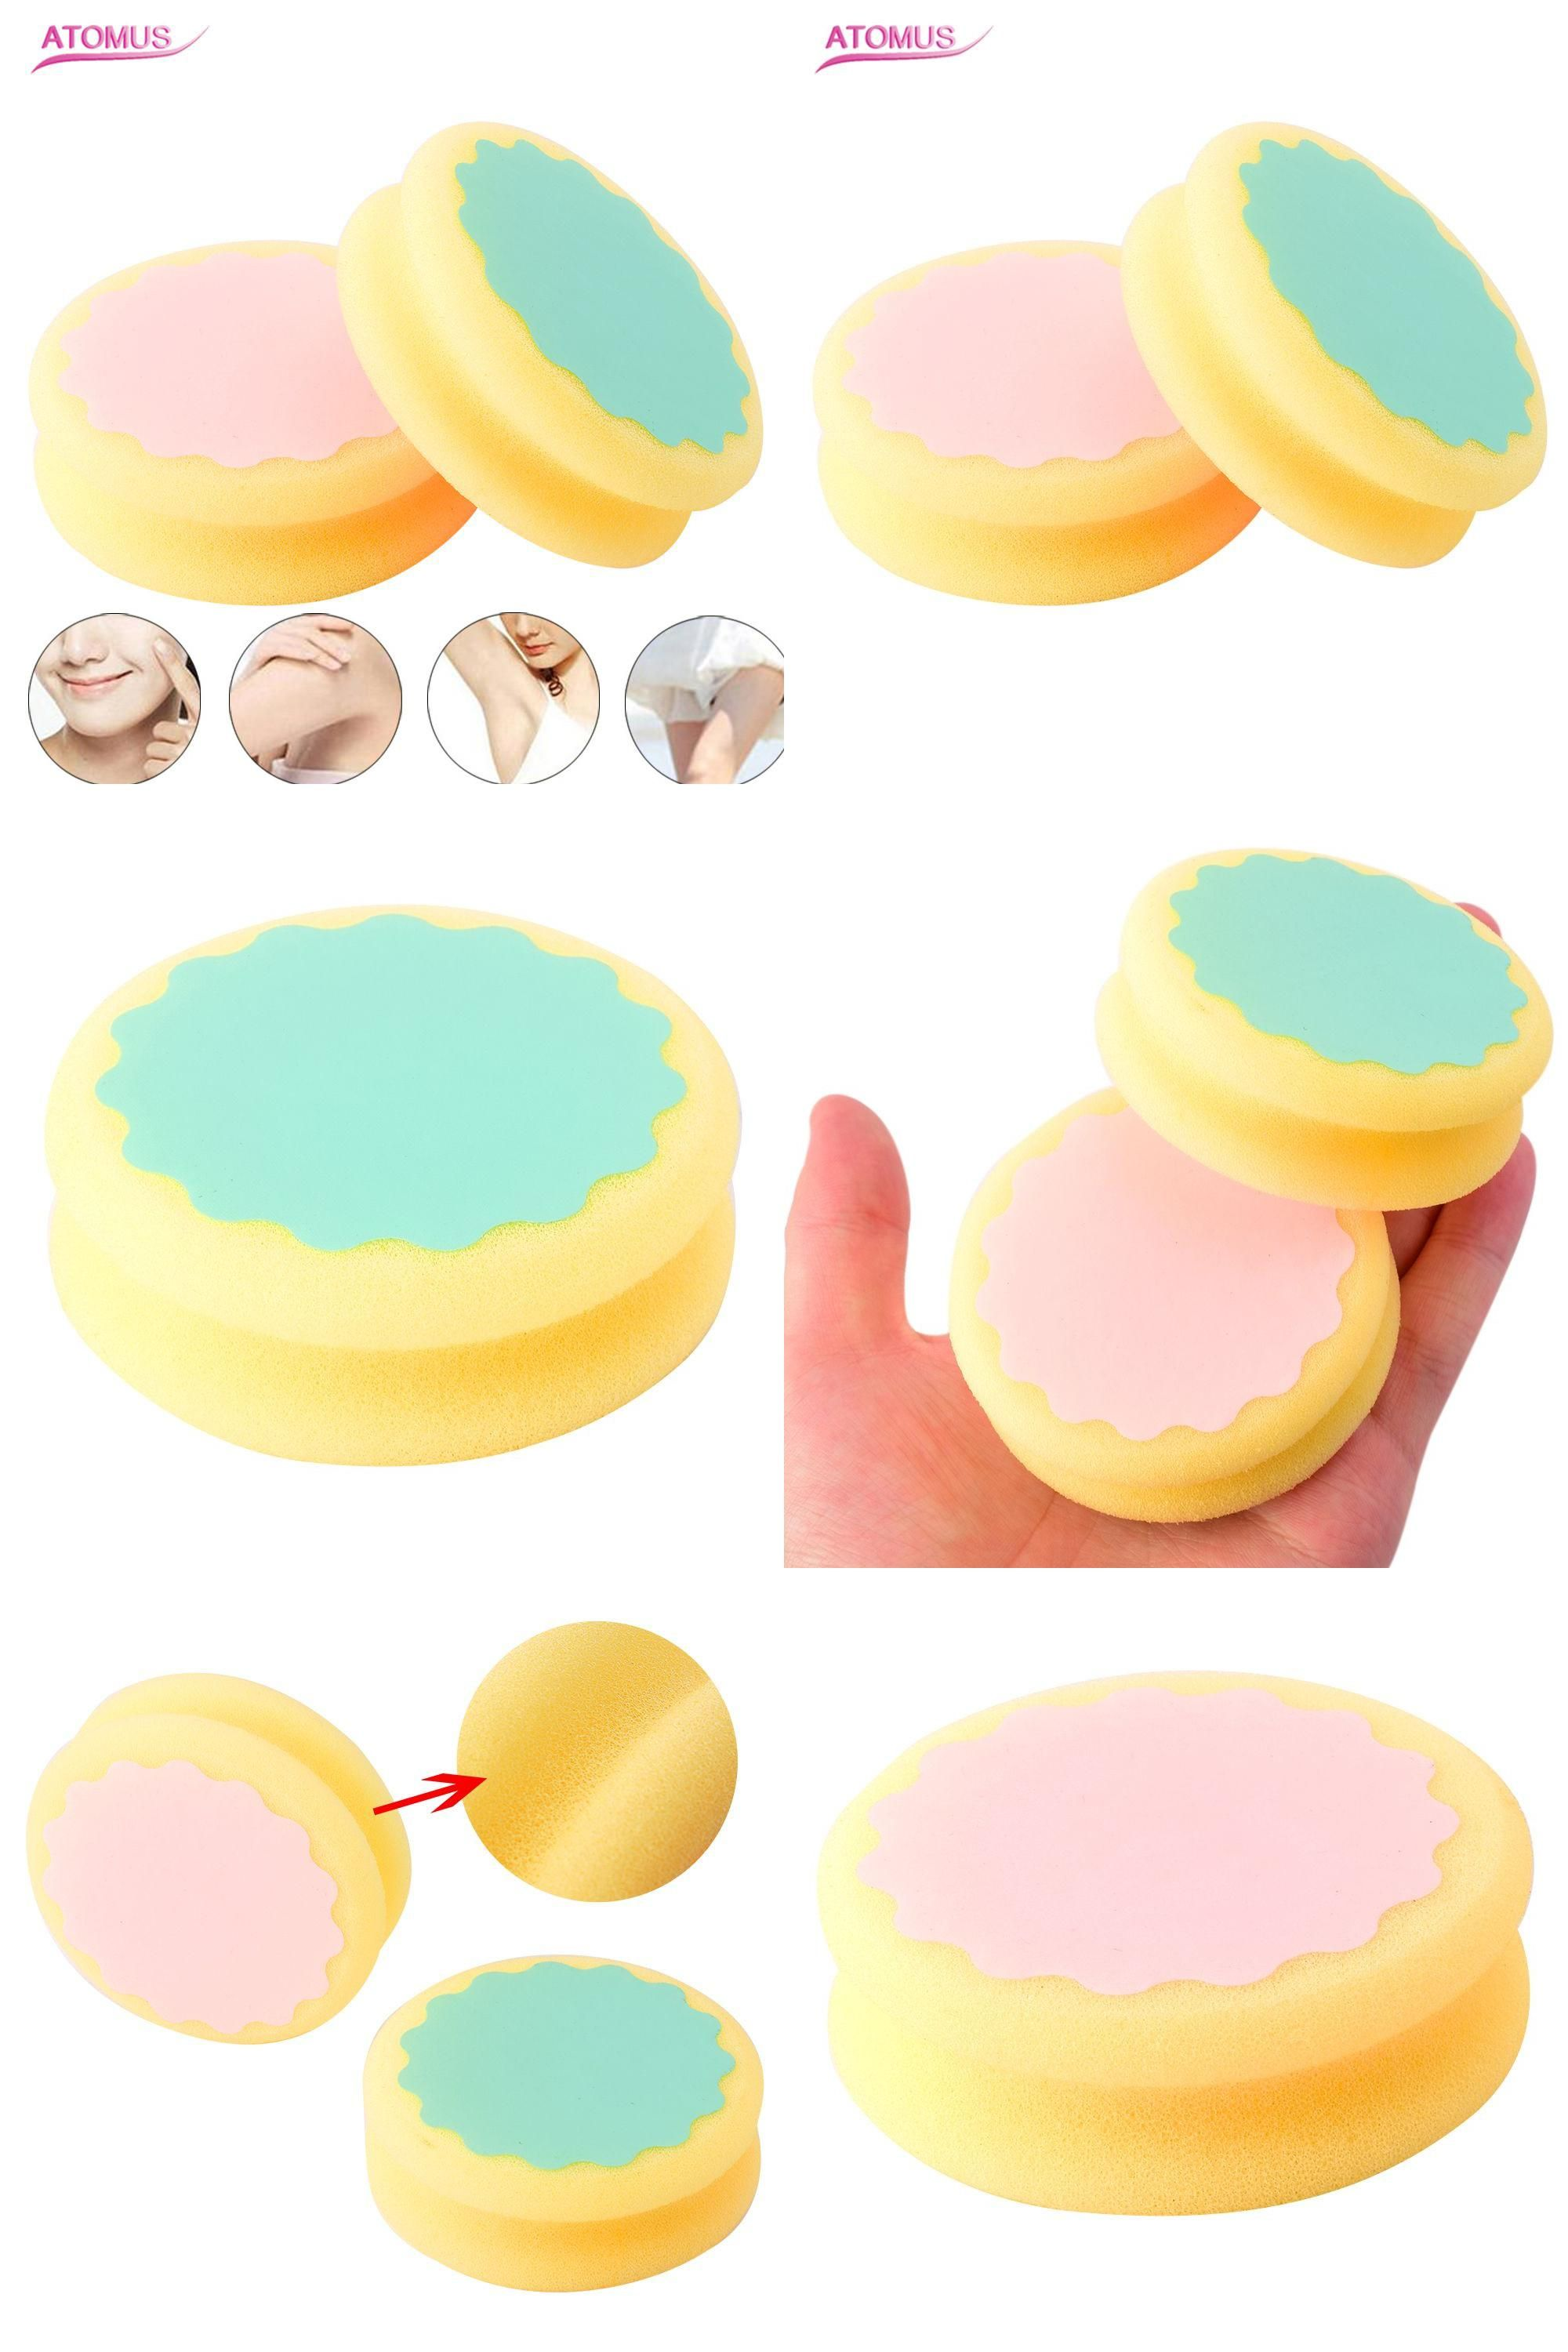 1pc Magic Painless Hair Removal Depilation Sponge Pad Save Way To Remove Hair Leg Arm Hair Remover Effective Special Buy Skin Care